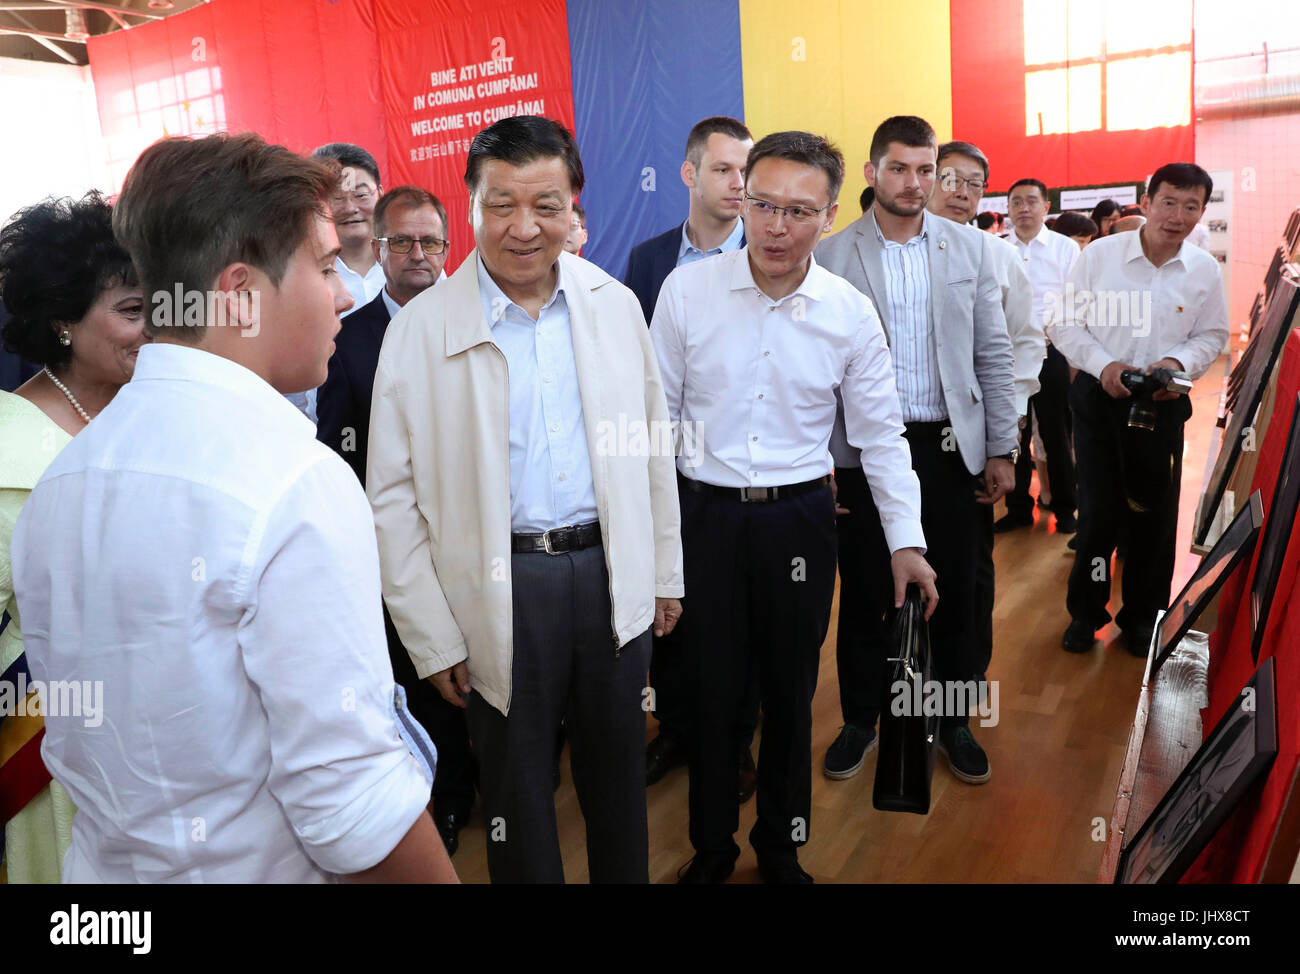 Bucharest, Constanta of Romania. 15th July, 2017. Liu Yunshan, a member of the Standing Committee of the Political - Stock Image